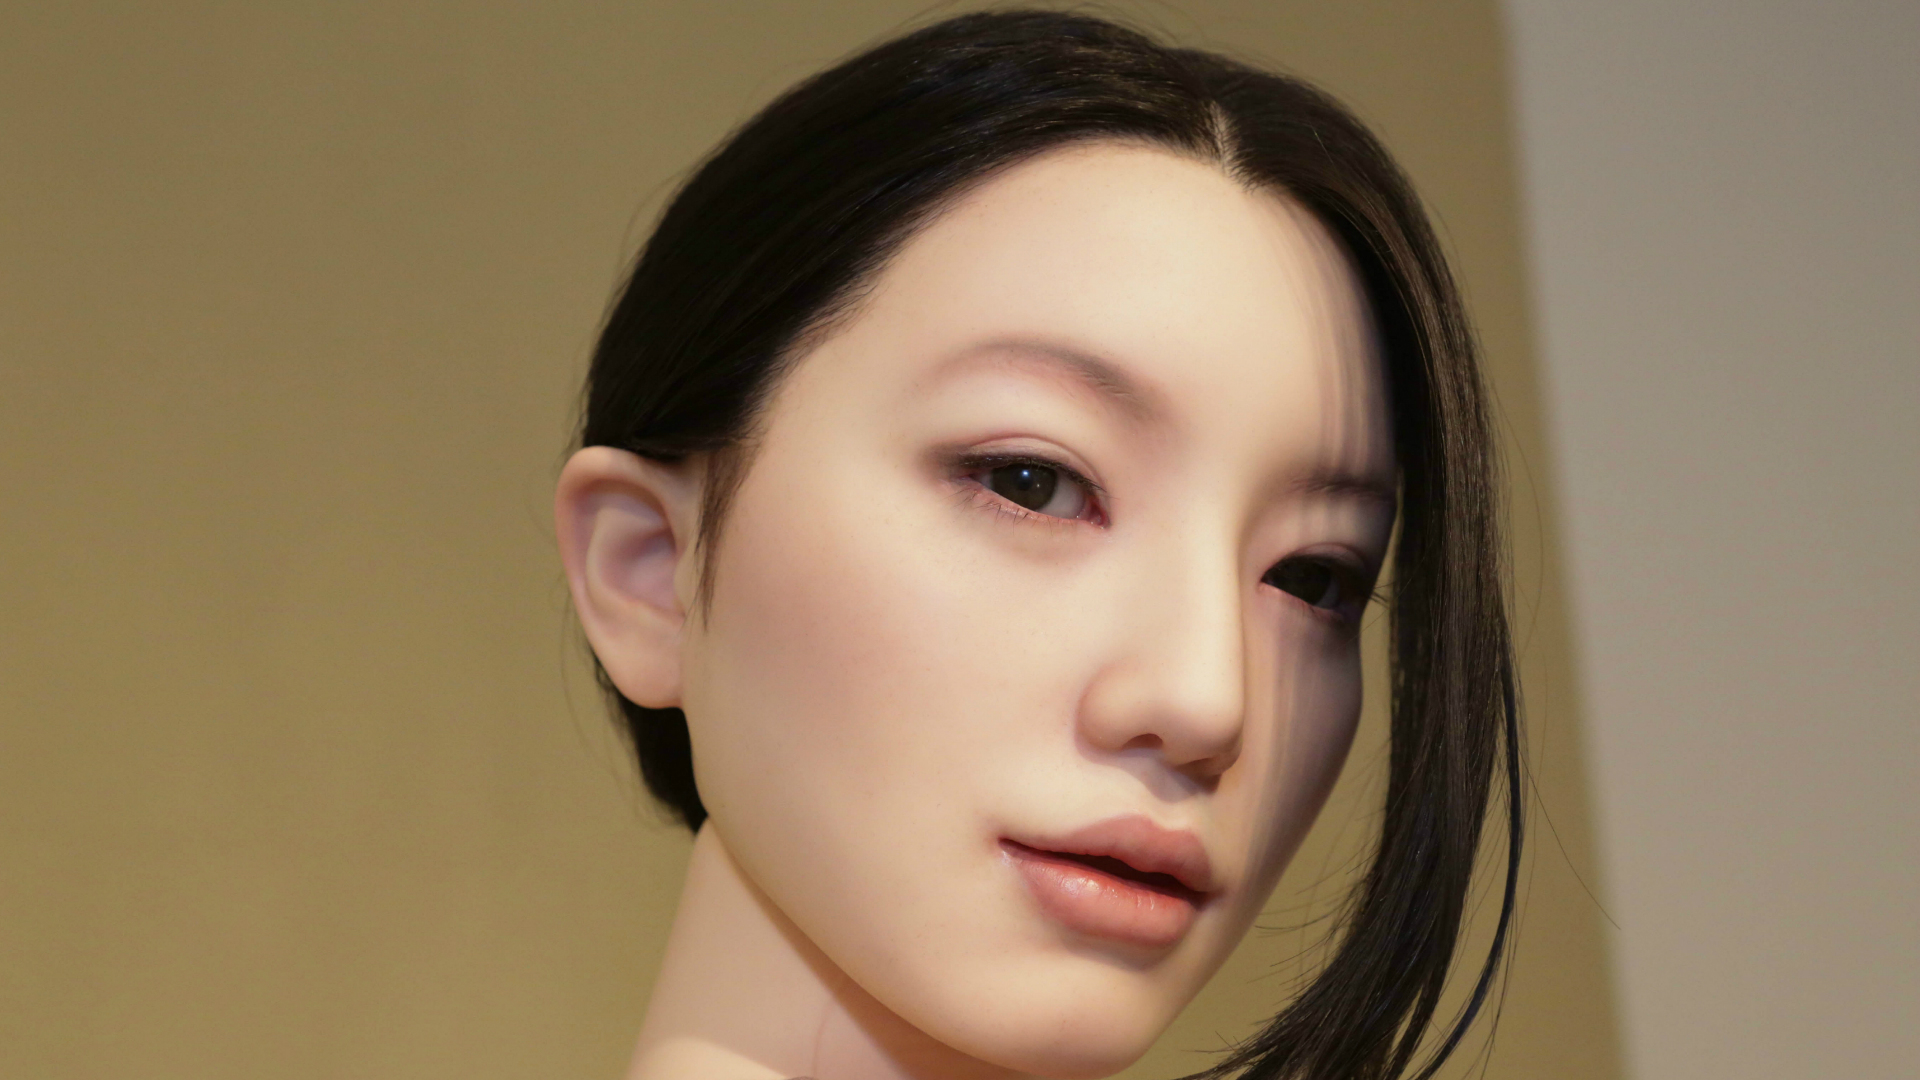 A Japanese sex doll.